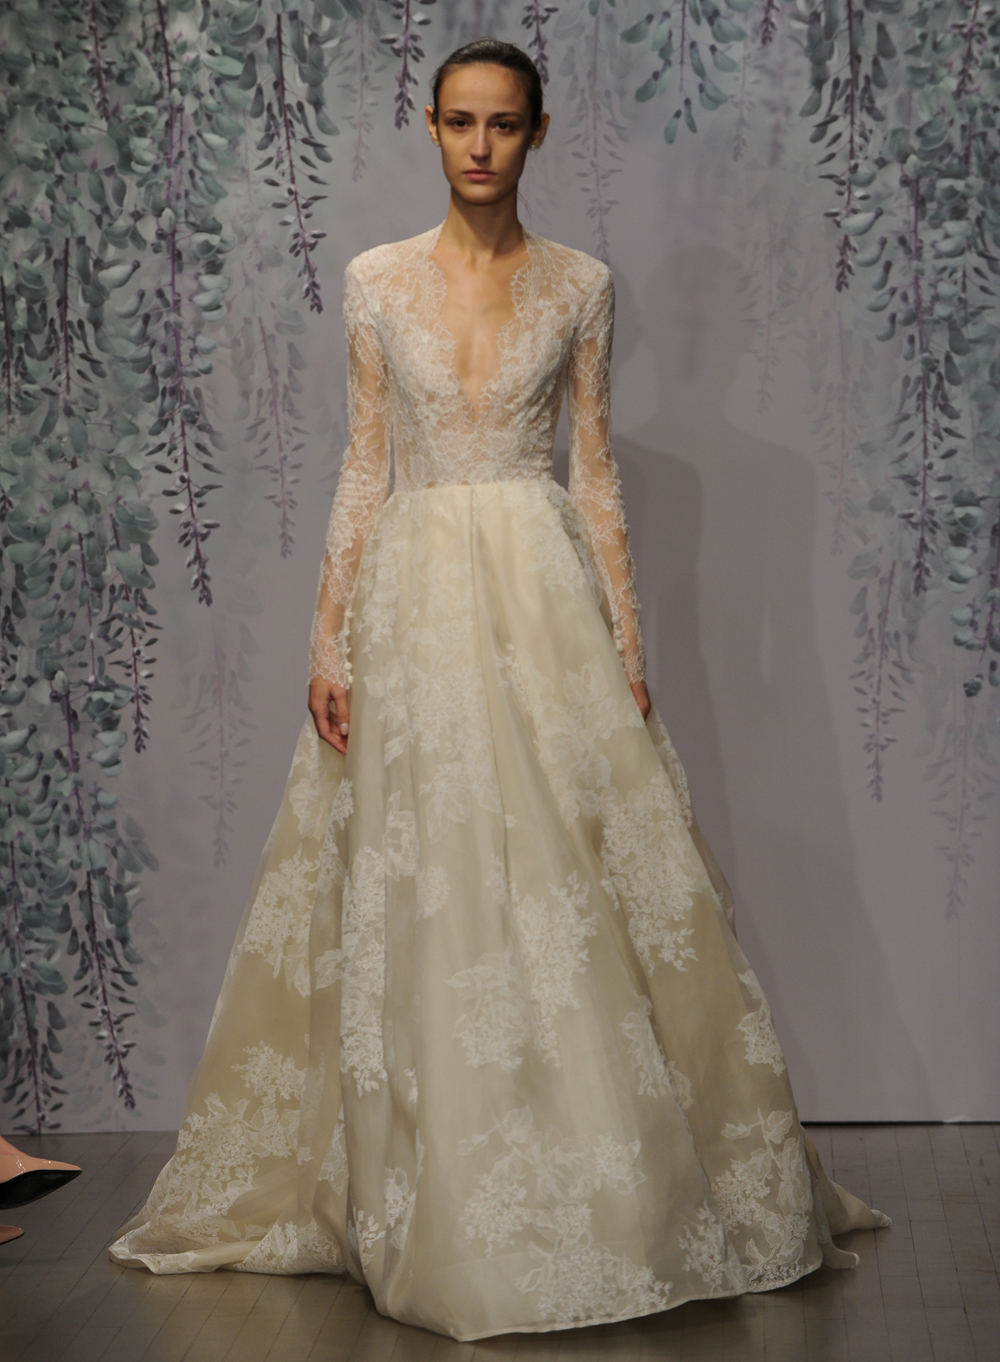 f44ea42361e Monique Lhuillier's Fall 2016 Wedding Dress Collection Is Romance ...